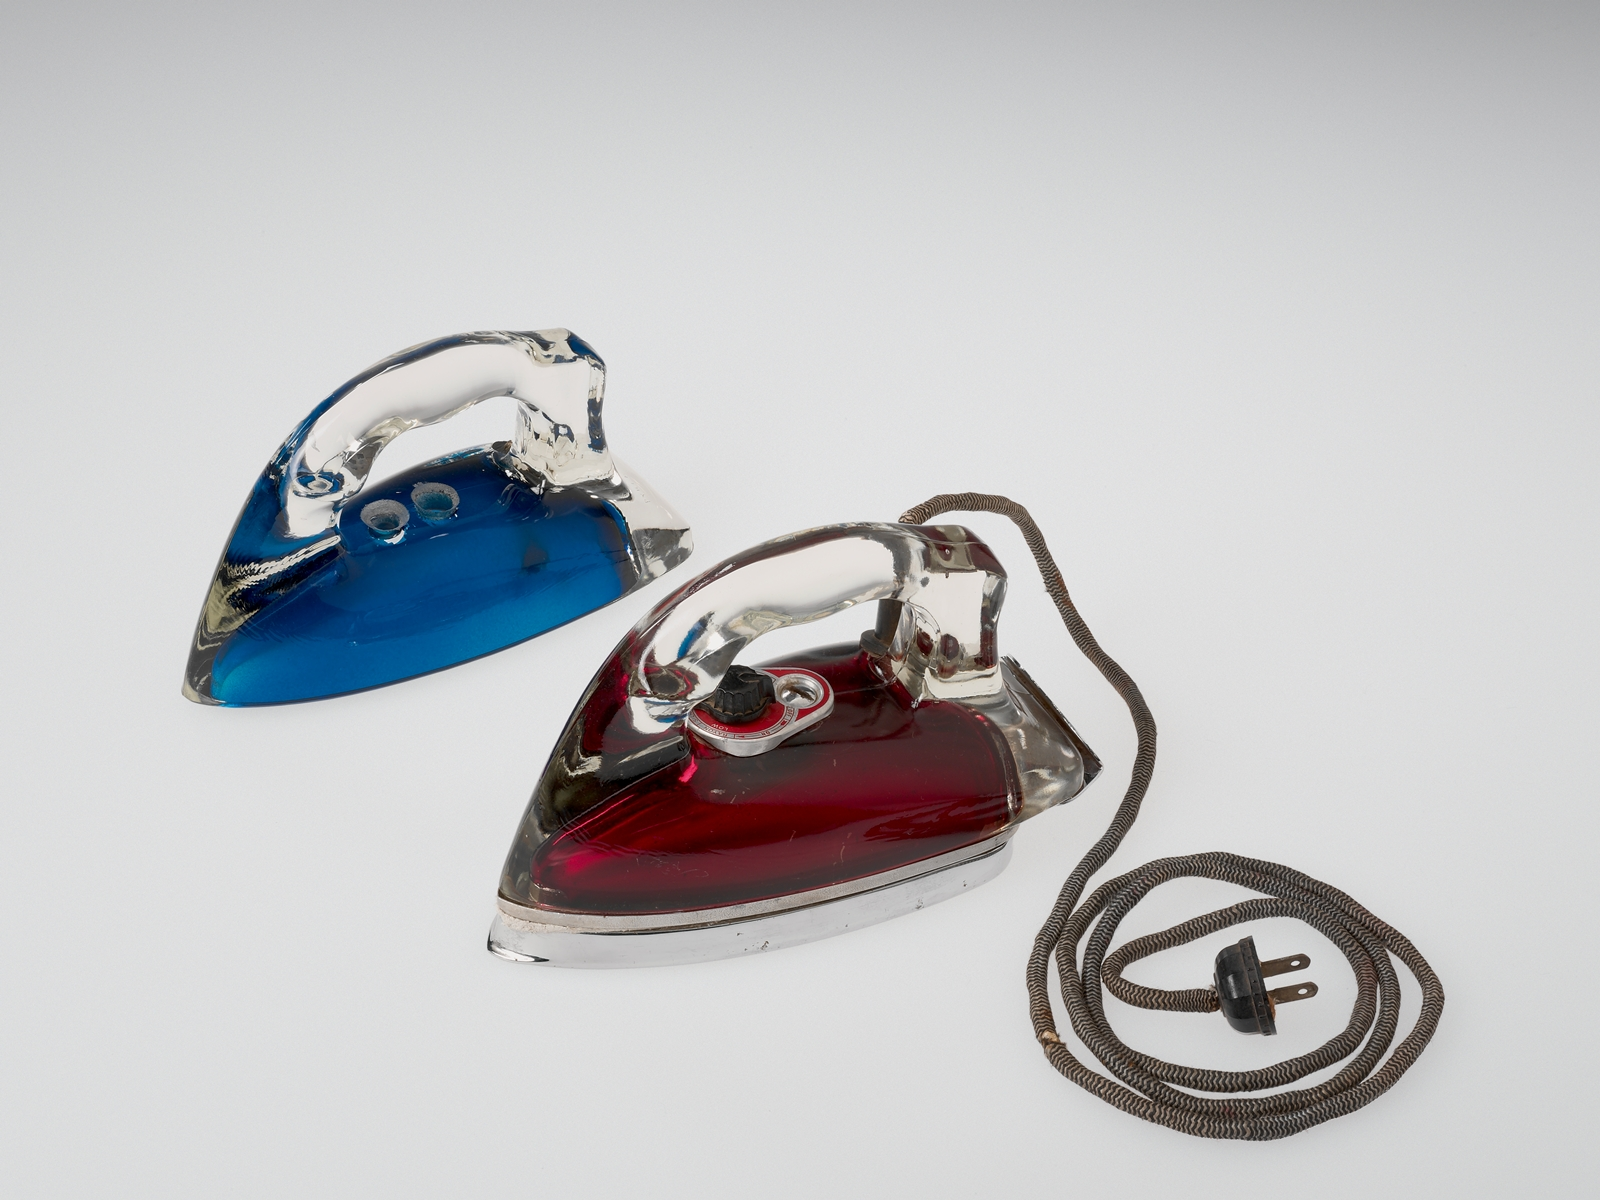 Silver Streak Iron Insert (blue) and Silver Streak Electric Iron (red), United States, Corning, NY, Corning Glass Works; Saunders Machine and Tool Corporation, made in 1946; designed in 1943; Blue: H: 11.7 cm, W: 21.6 cm, D: 9.6 cm; Red: H: 12.5 cm, W: 22